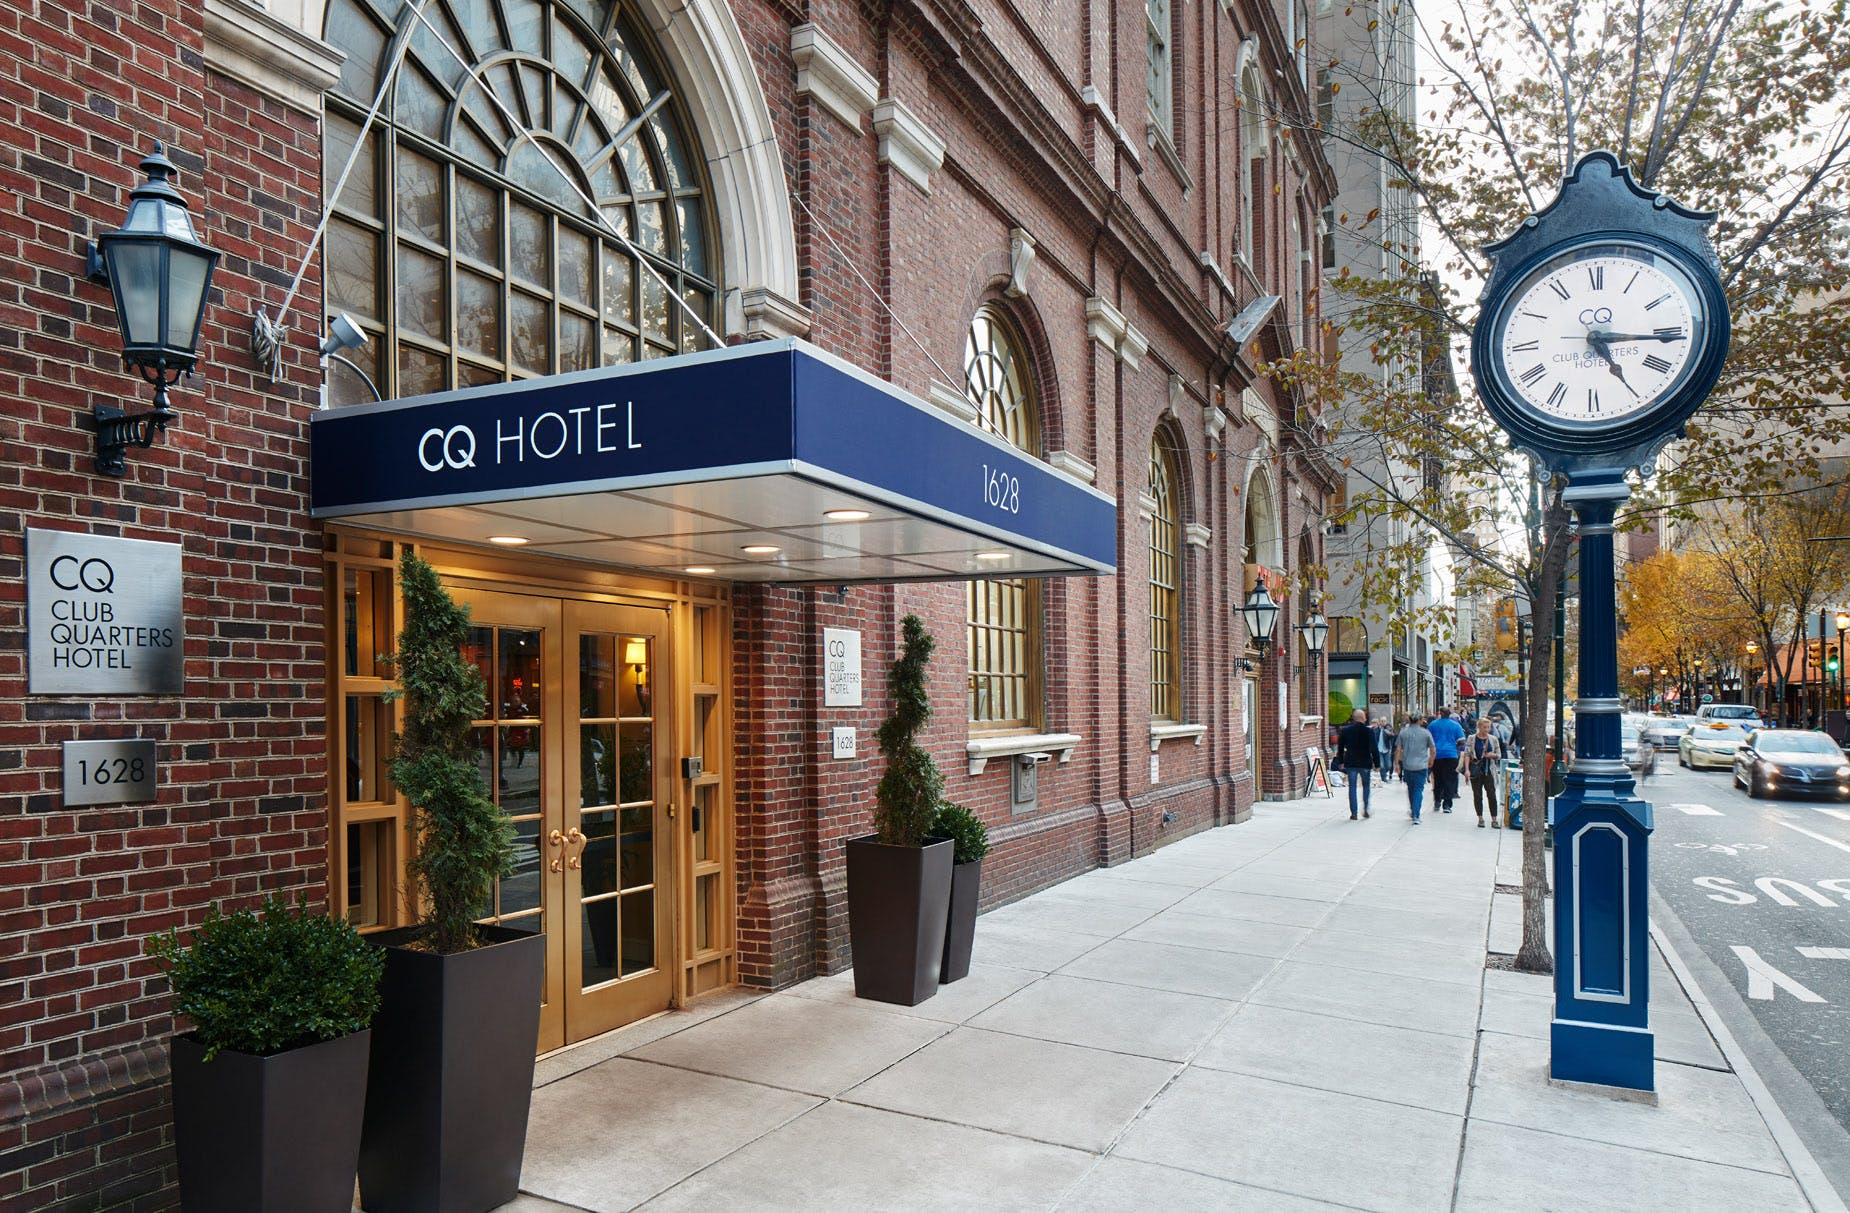 Exterior of Club Quarters Hotel in Philadelphia